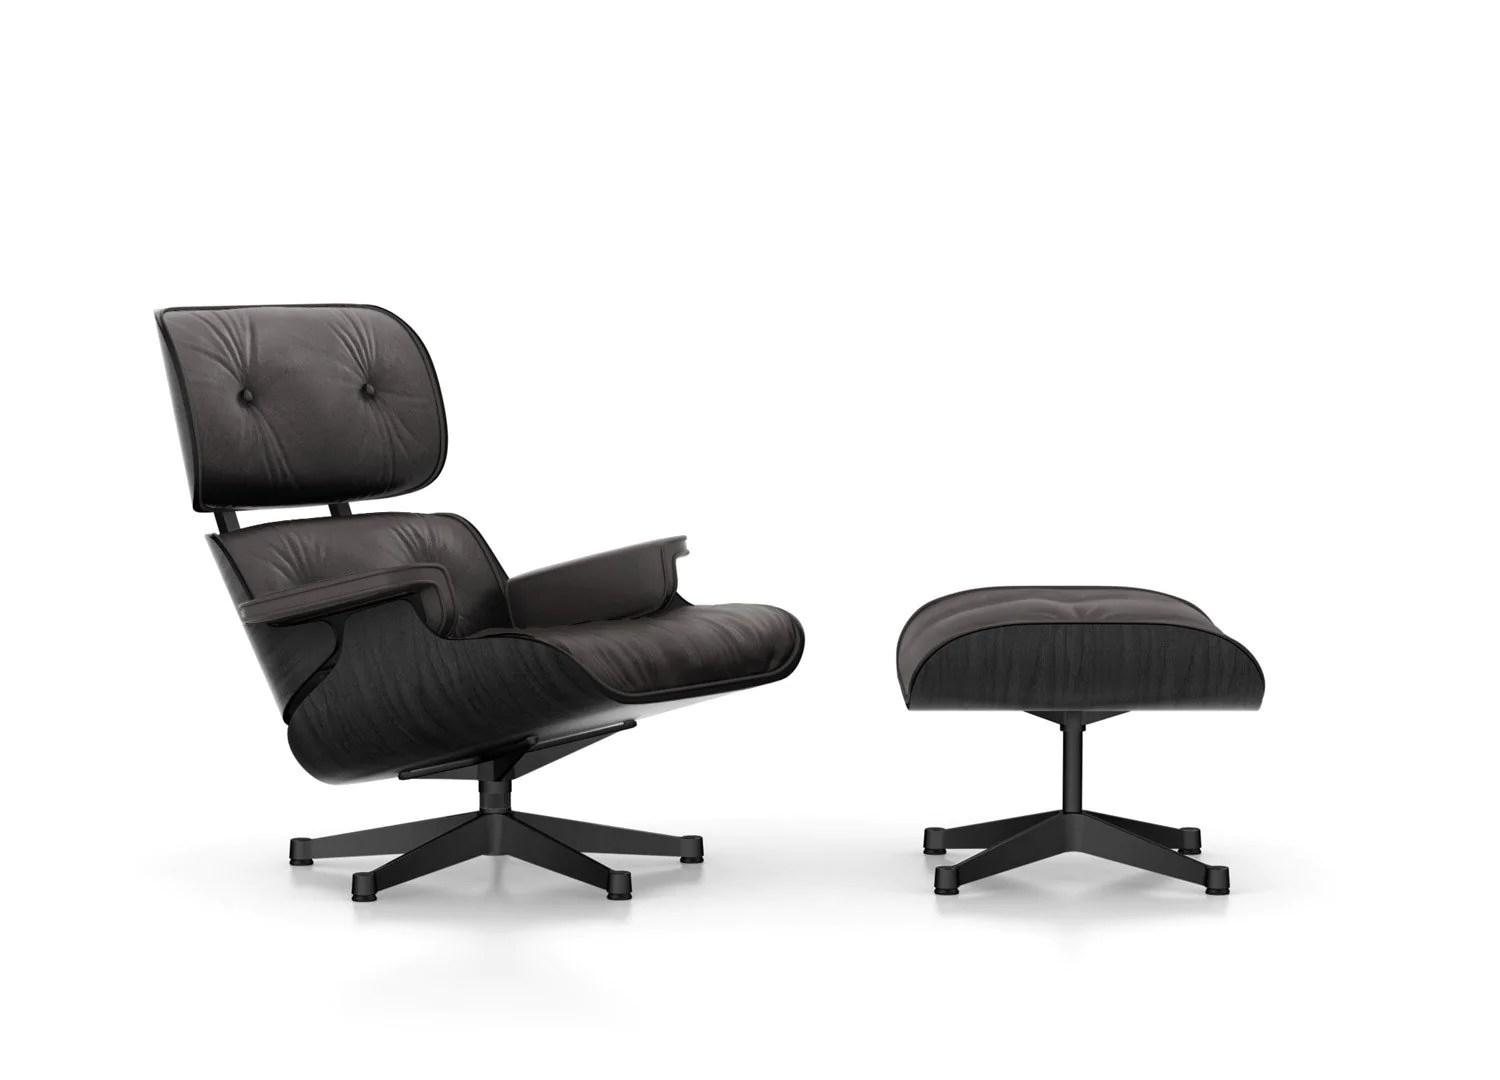 Lounge Couch Company Eames Lounge Chair Black Version Couch Potato Company